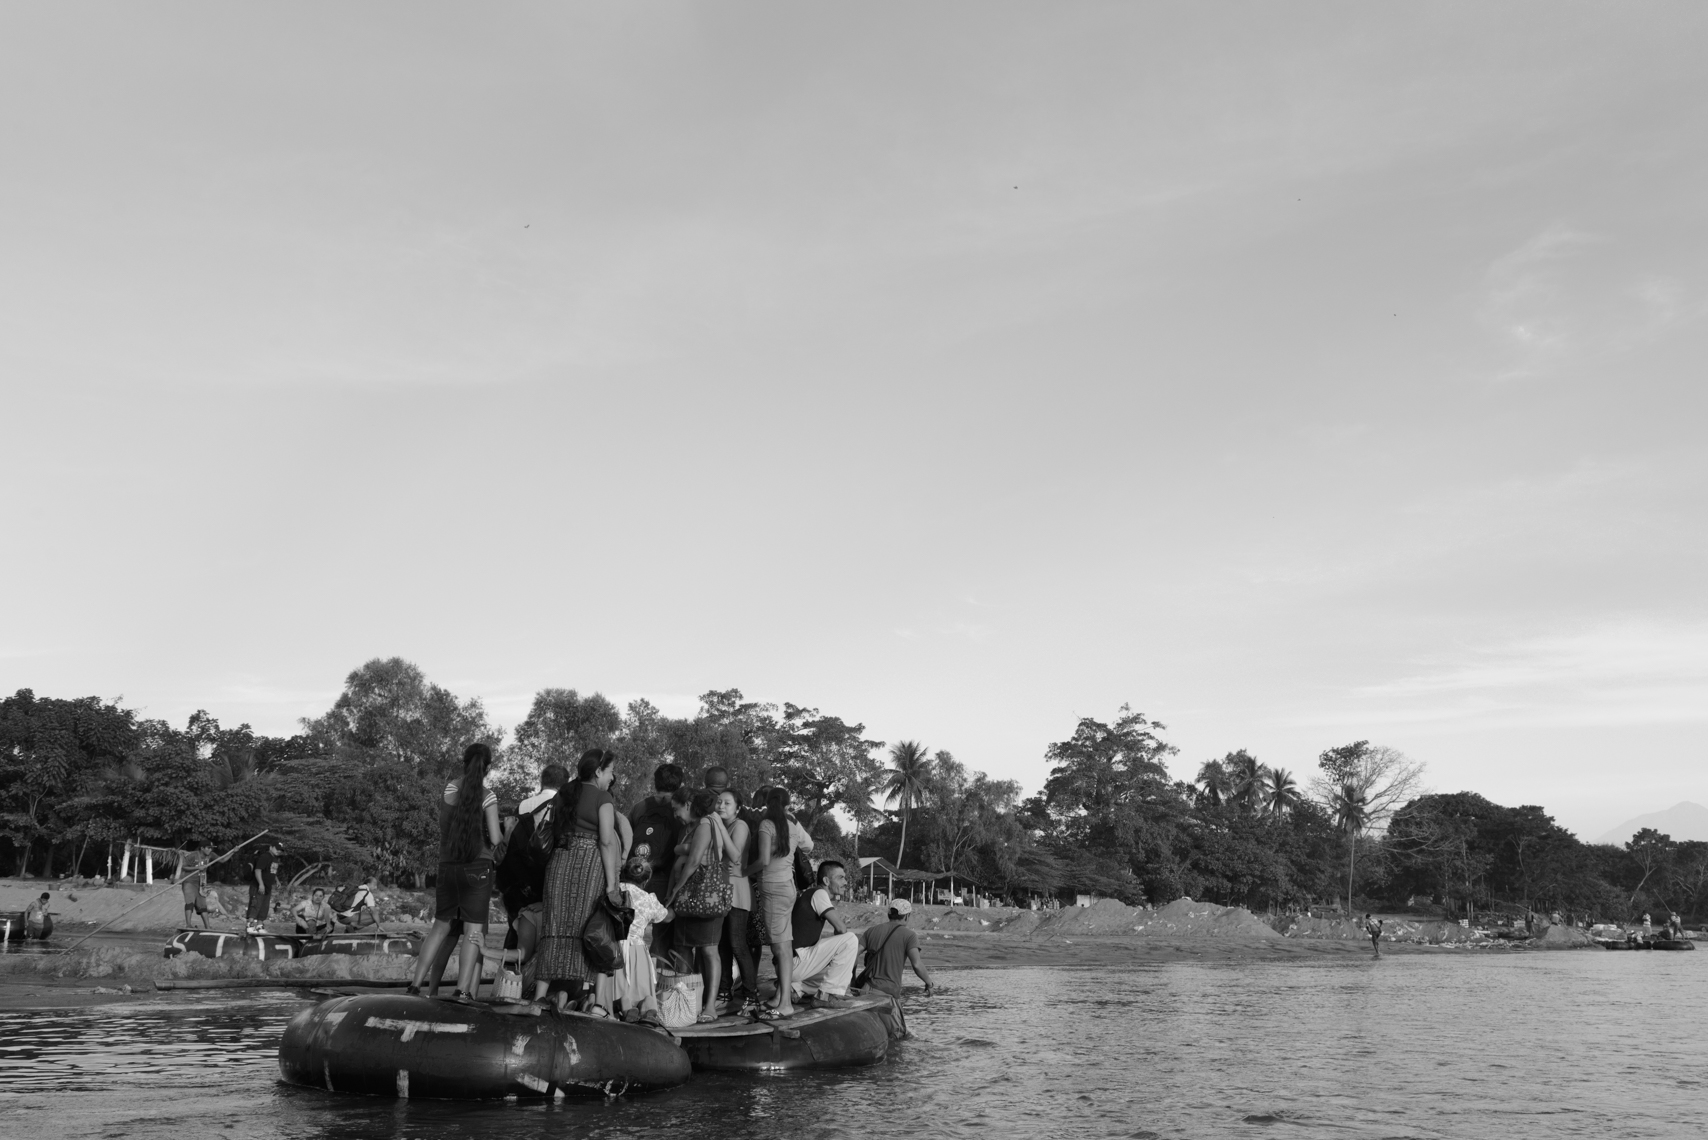 People illegally cross the Suchiate River that marks the Mexico/Guatemala border wishing sight of a bridge that holds an official crossing. There is little immigration enforcement and people cross openly to migrate and buy and sell goods. Factory-made goods like toothpaste, toilet paper, soft drinks leave Mexico here and vegetables, workers and migrants arrive.